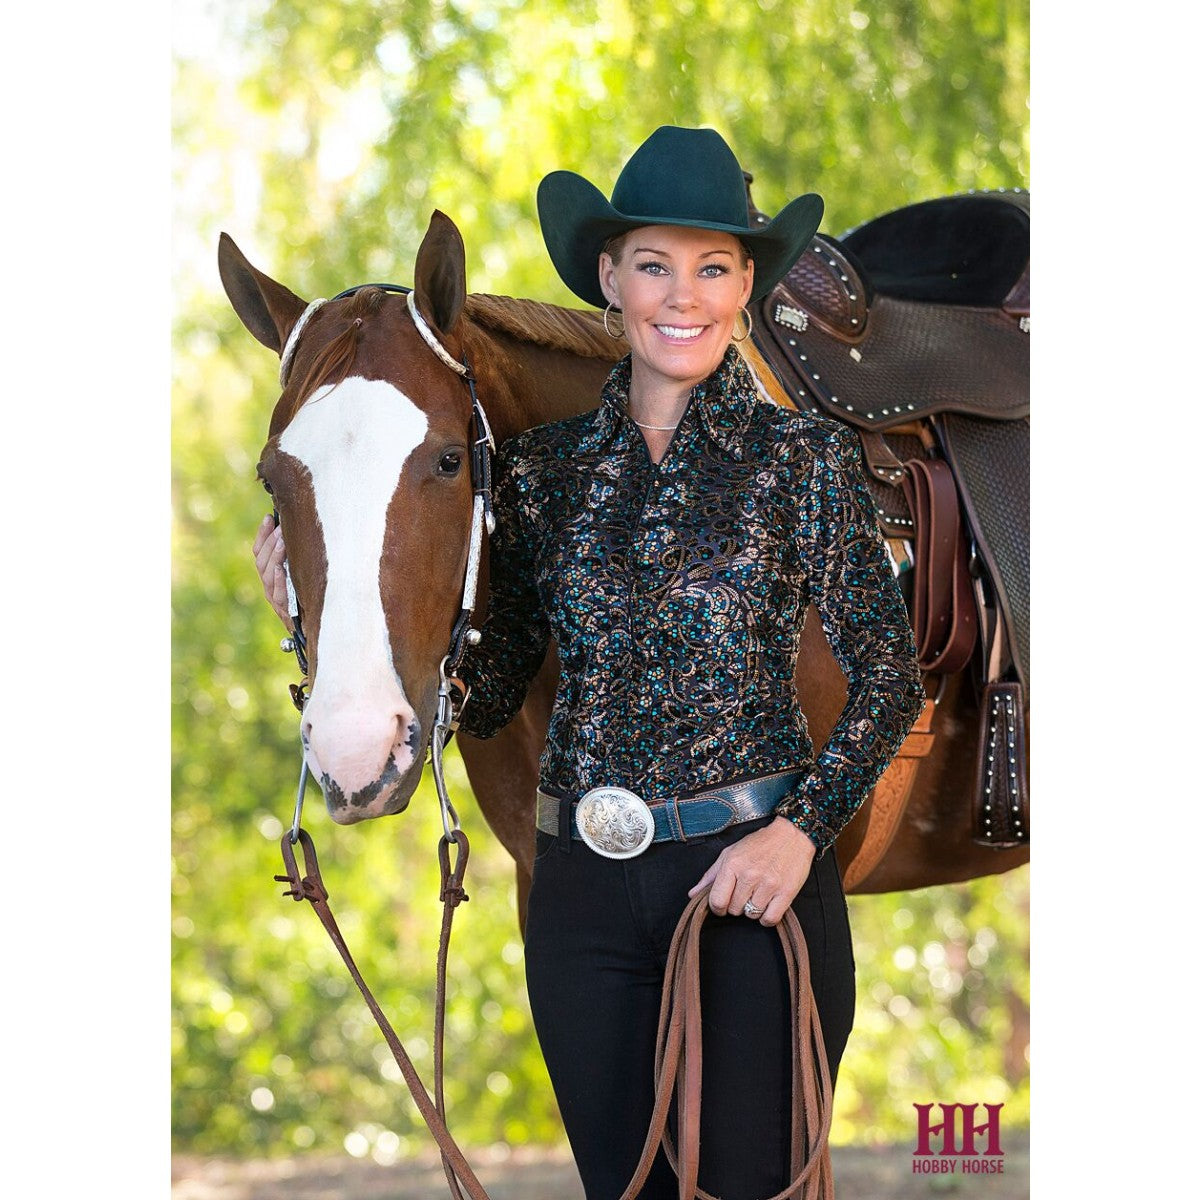 Ladies' Hobby Horse Prudence Show Blouse - Limited Edition